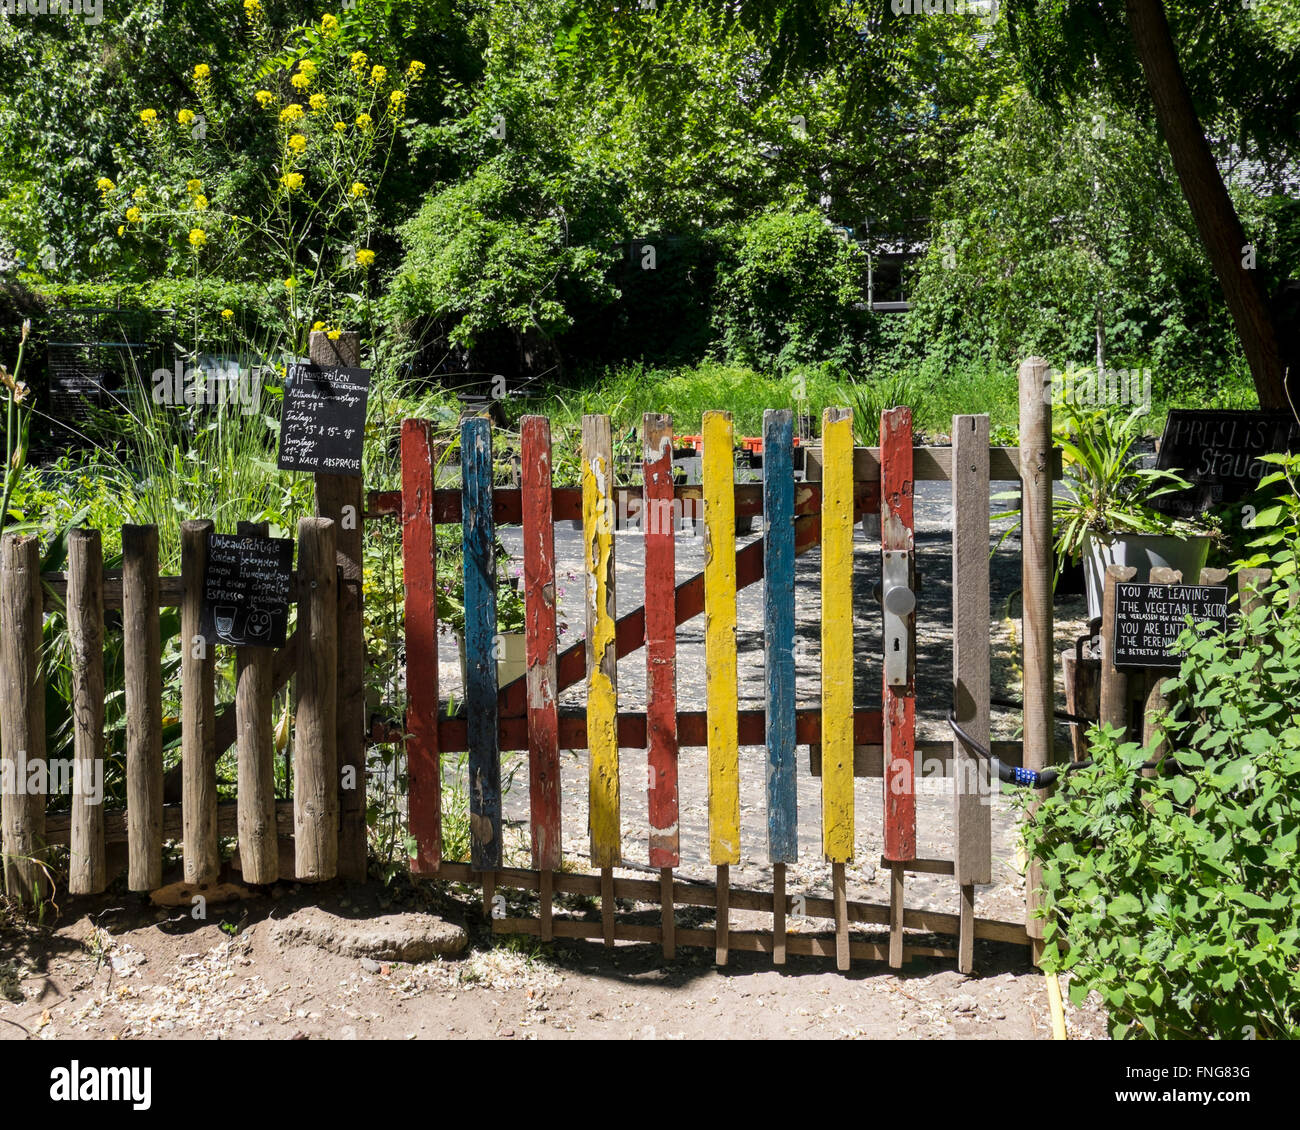 Prinzessinnengarten, Princesses Garden, An Urban Agricultural Project.  Gardeners Grow Vegetable And Use Recycled Materials